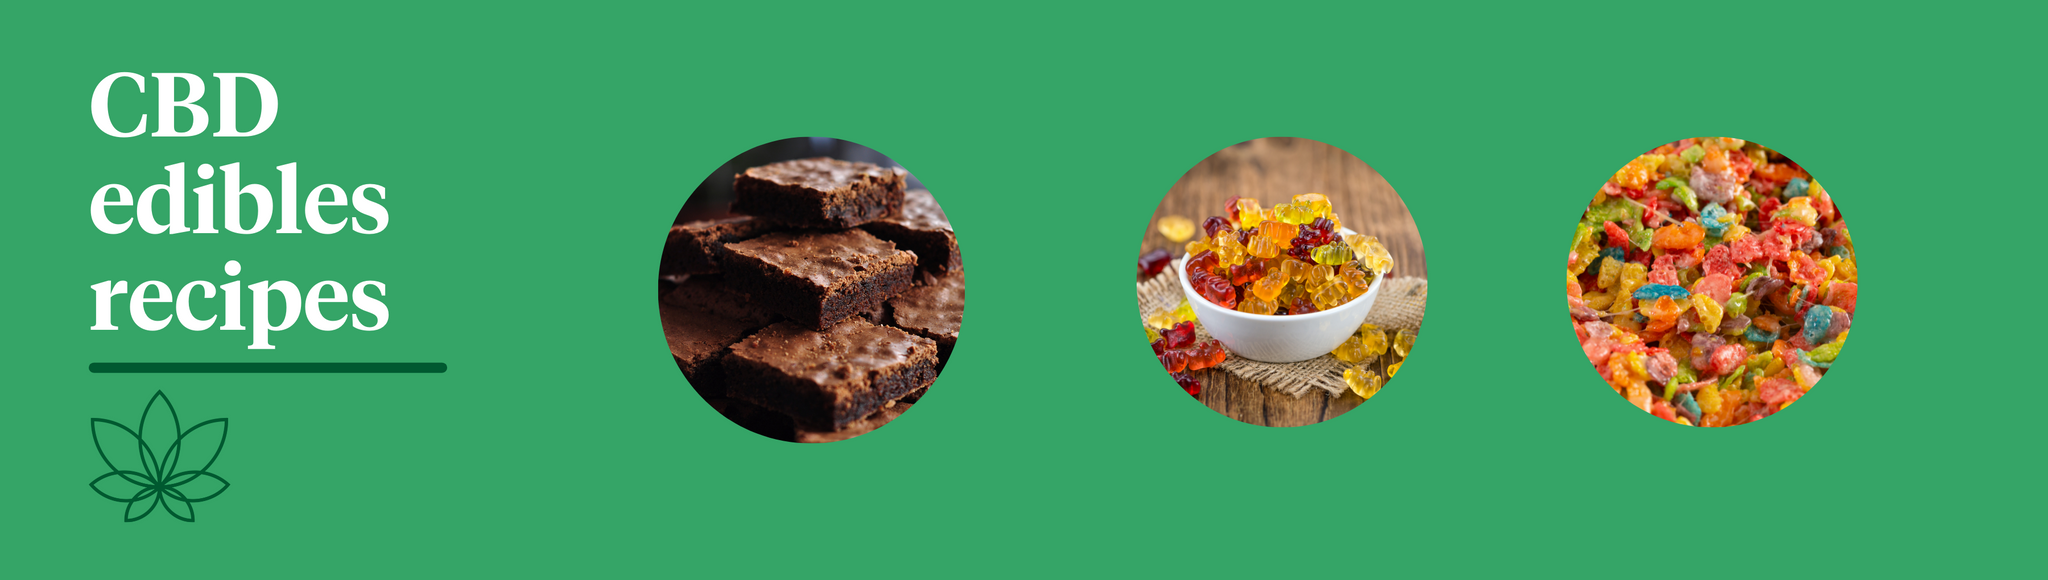 A green background with the Supreme CBD logo showcasing three CBD edibles recipes. One image displaying a stack of brownies, the middle image showing a bowl of gummy bears and the final image displaying a plethora of fruity pebbles.